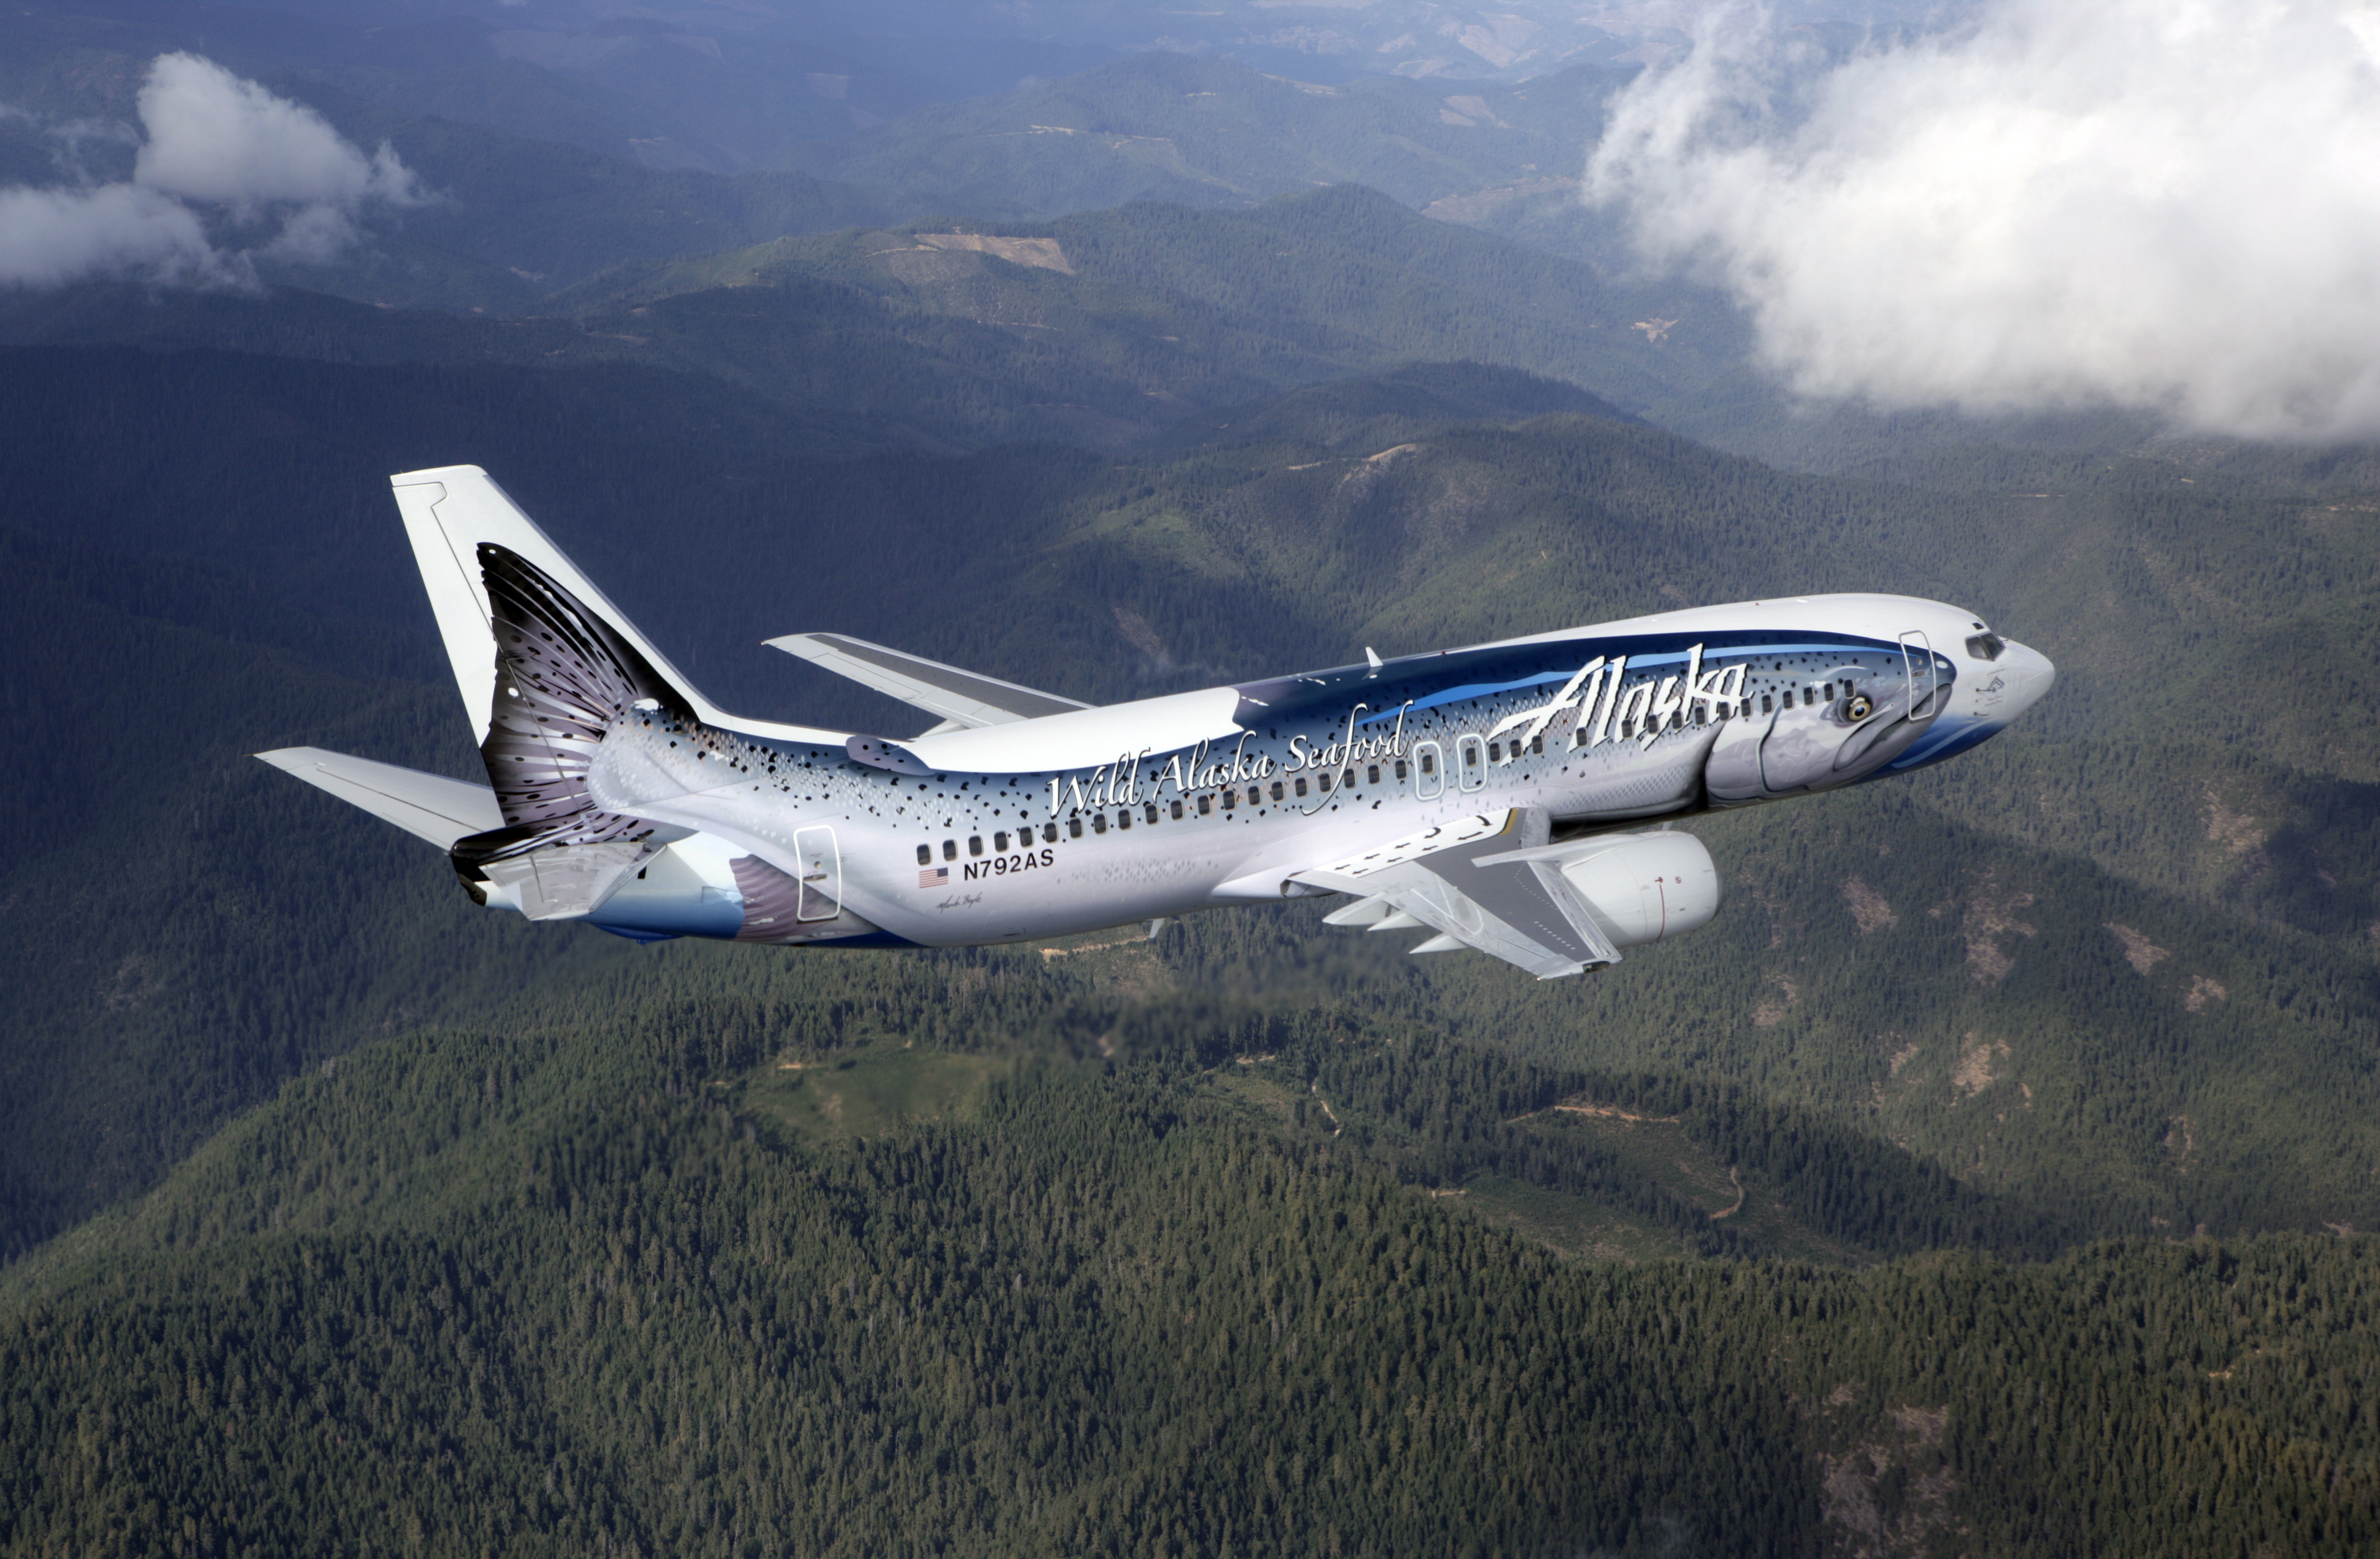 World's Largest Flying Fish Takes To The Skies Again | TheDesignAir